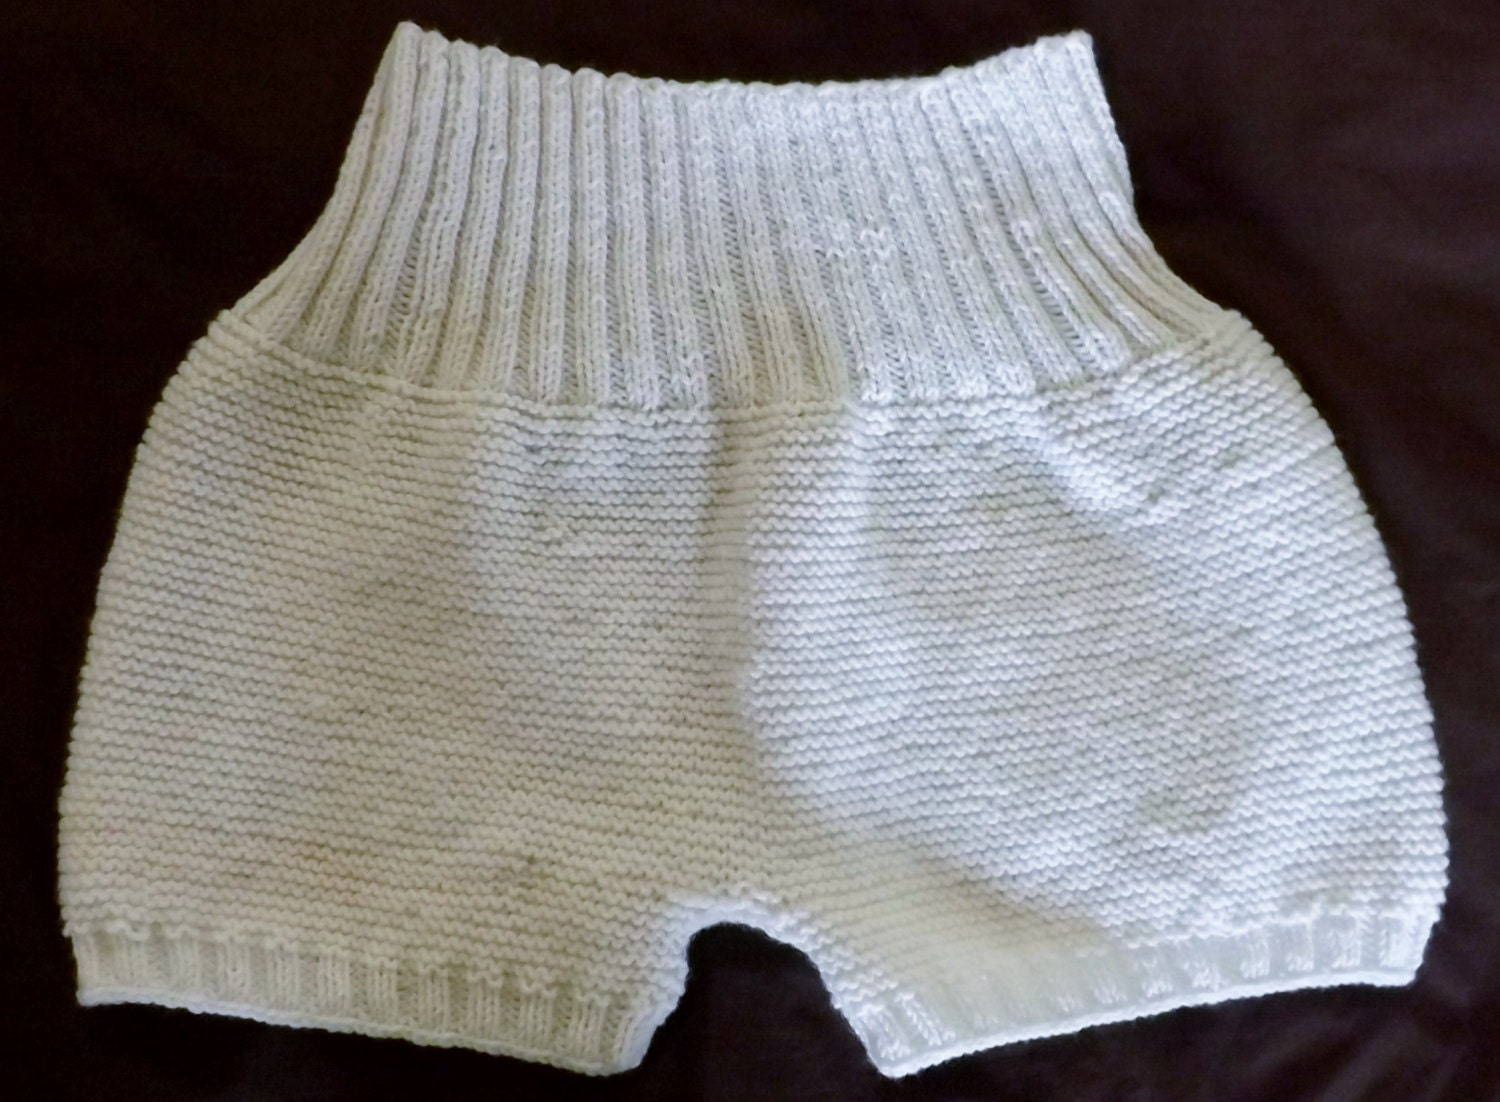 Knitting Pattern For Wool Diaper Covers : Hand knit adult wool diaper cover Adult wool soaker